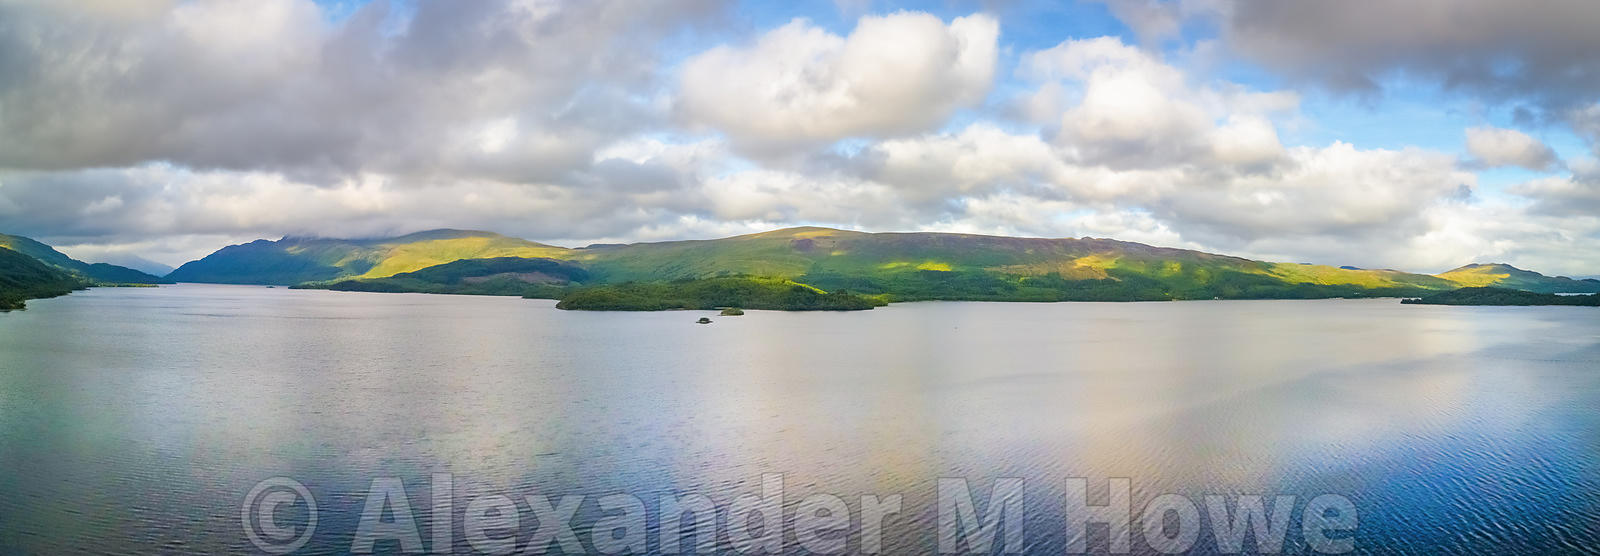 Looking across Loch Lomond towards Conic Hill with fluffy white clouds in the sky and patches of yellow sunlight on the hillsides.